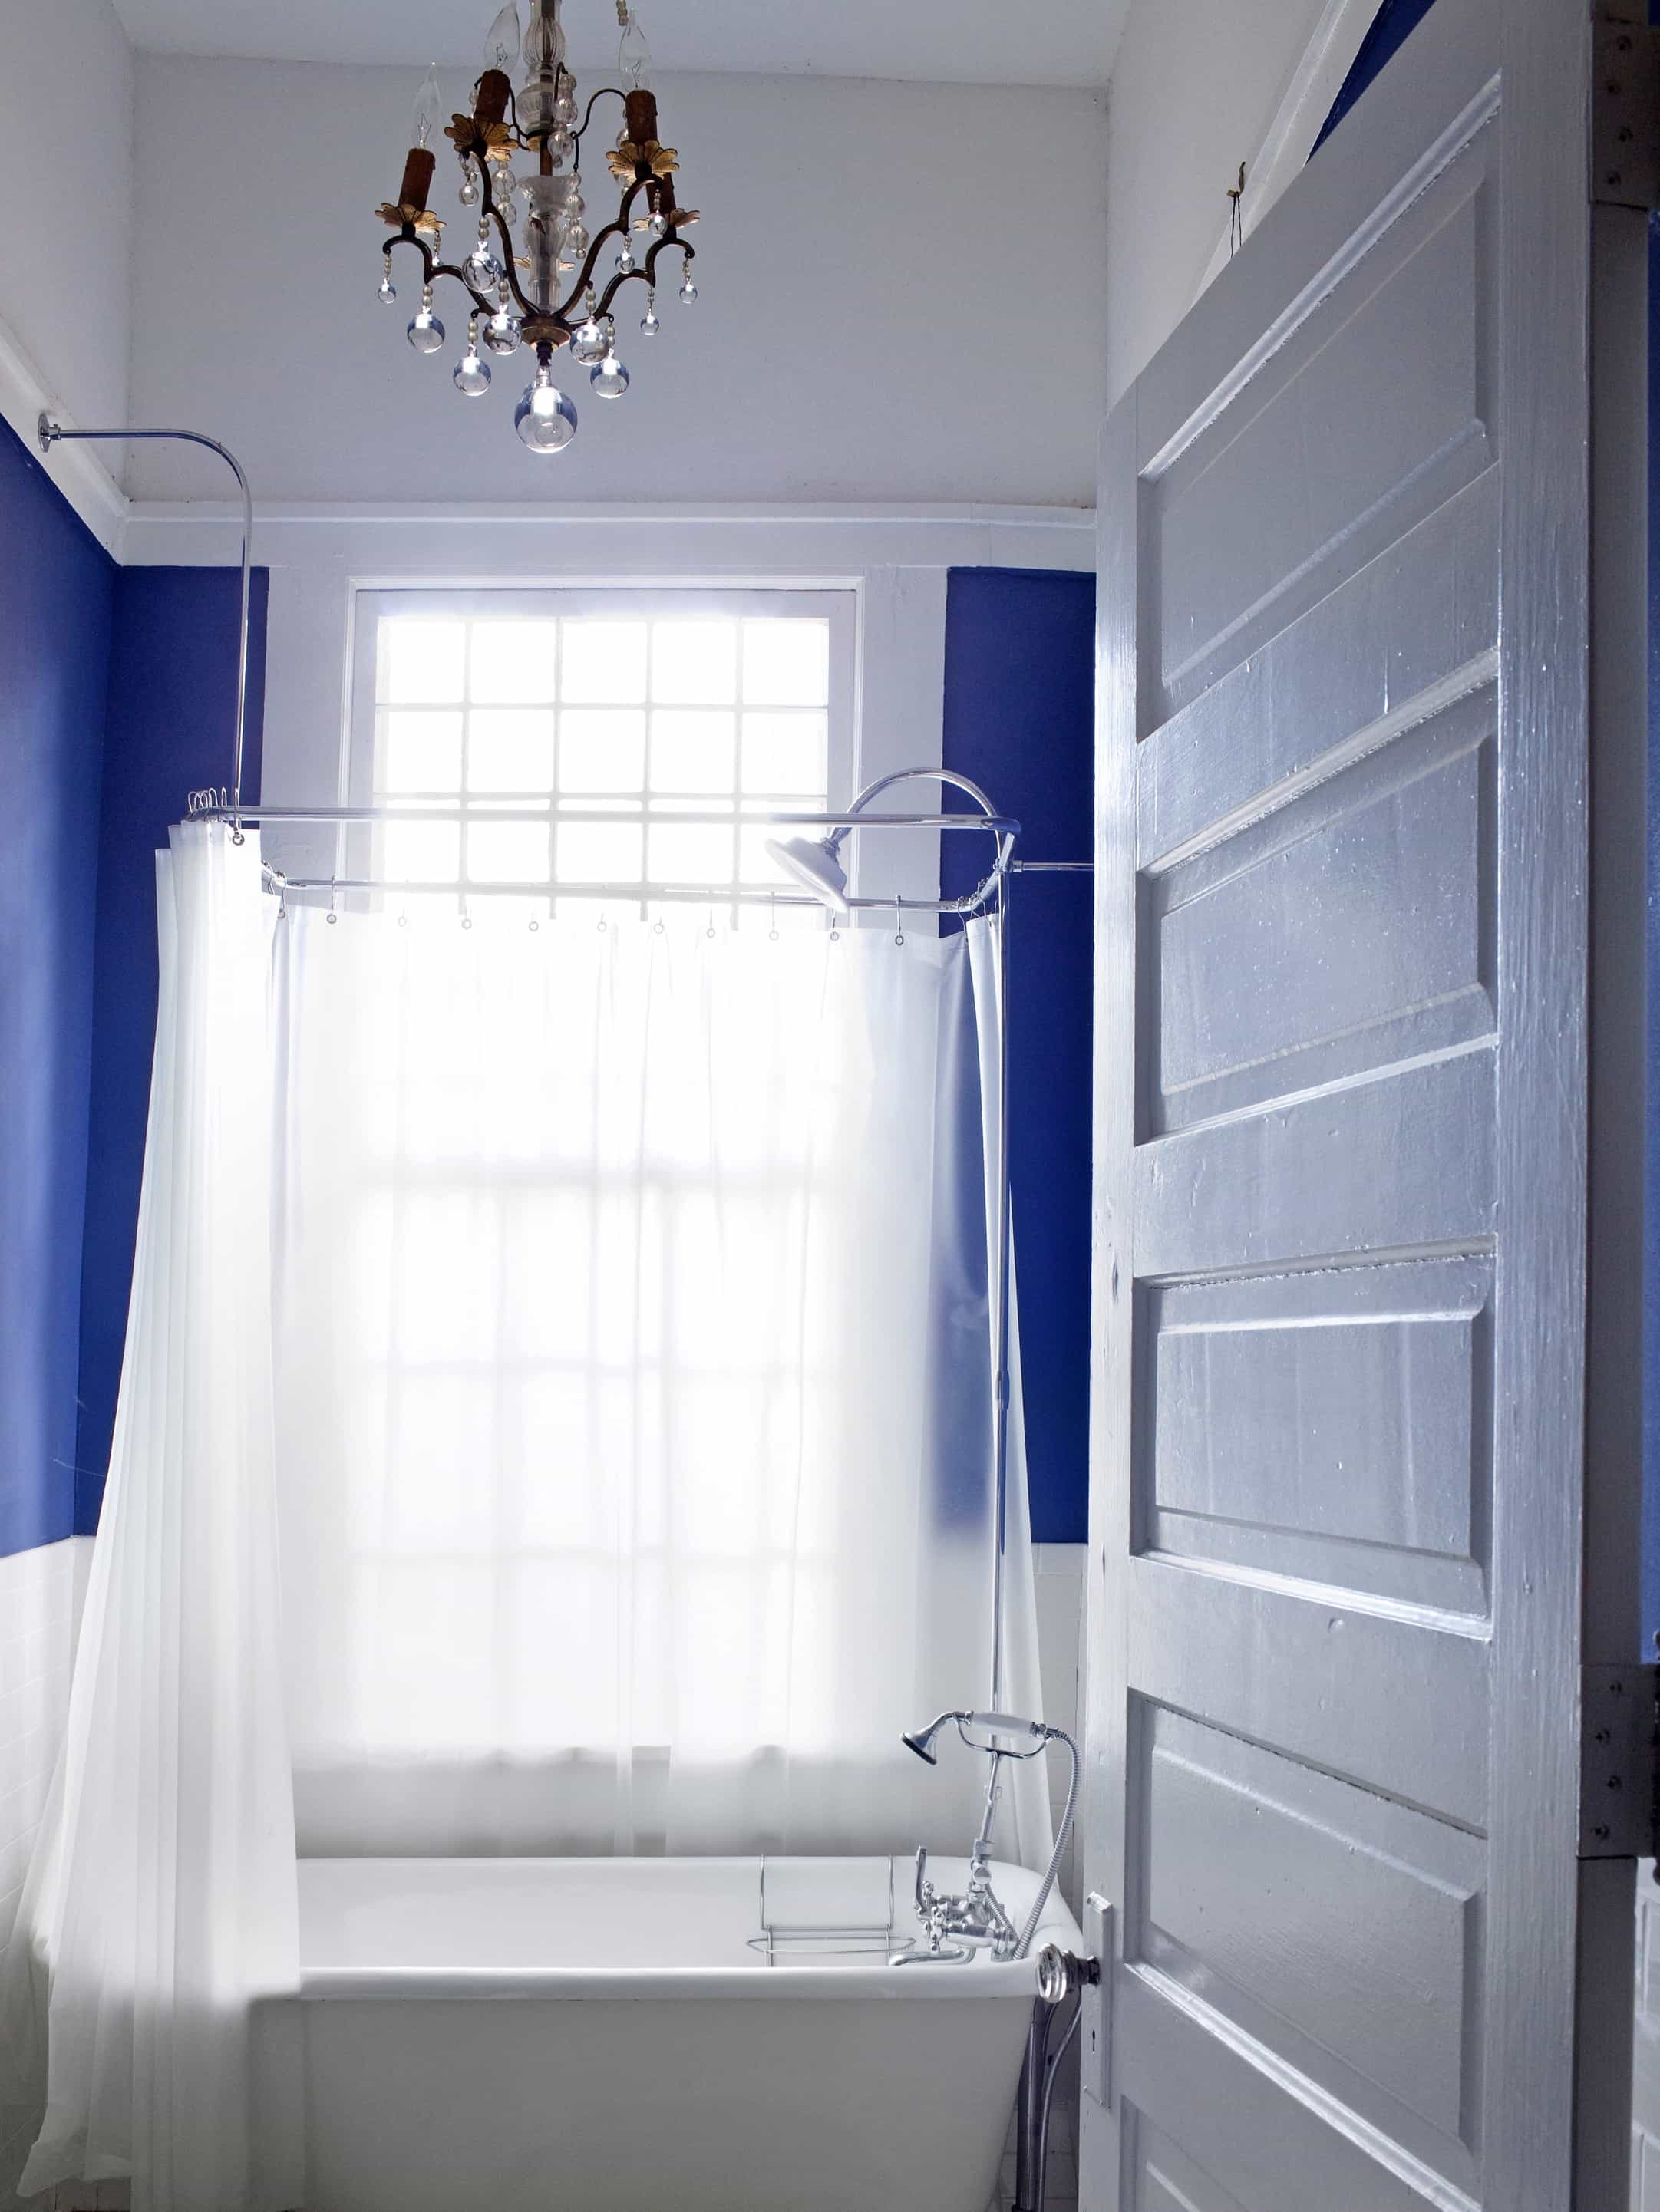 Royal Blue Bathroom With White Slipper Tub #51016